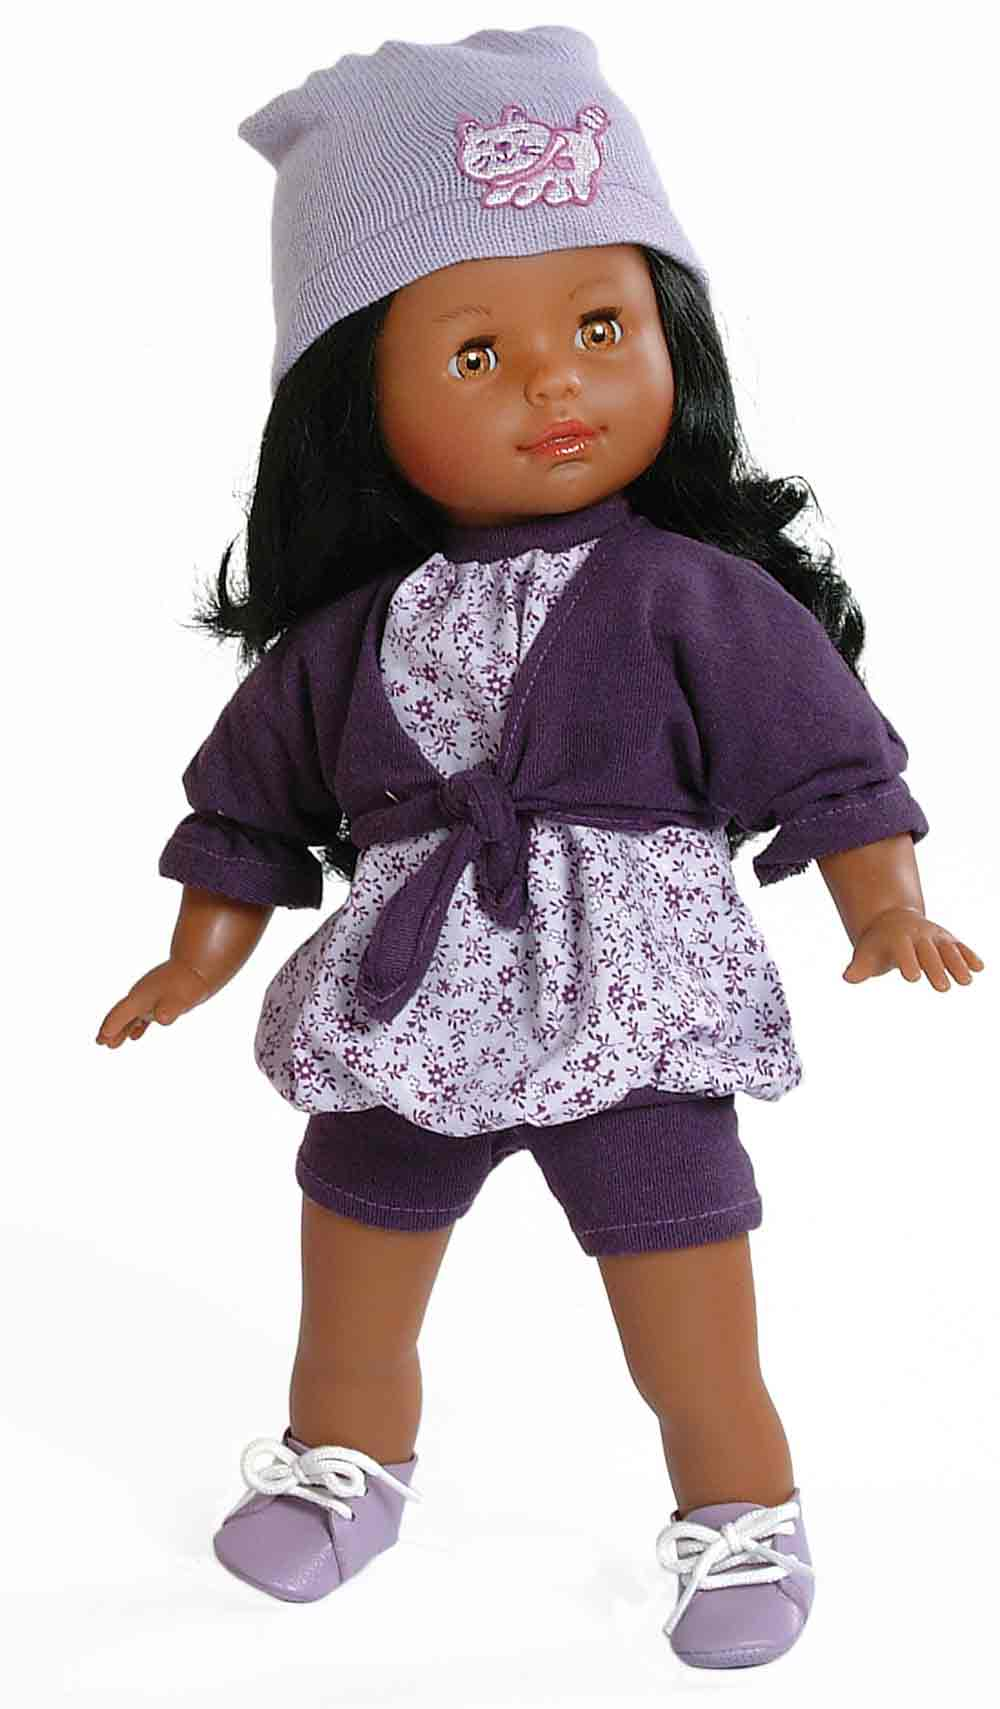 "Paola Reina Los Blanditas Esther 14"" African American Fashion Doll (Made in Spain) by Sunny Spain Imports"